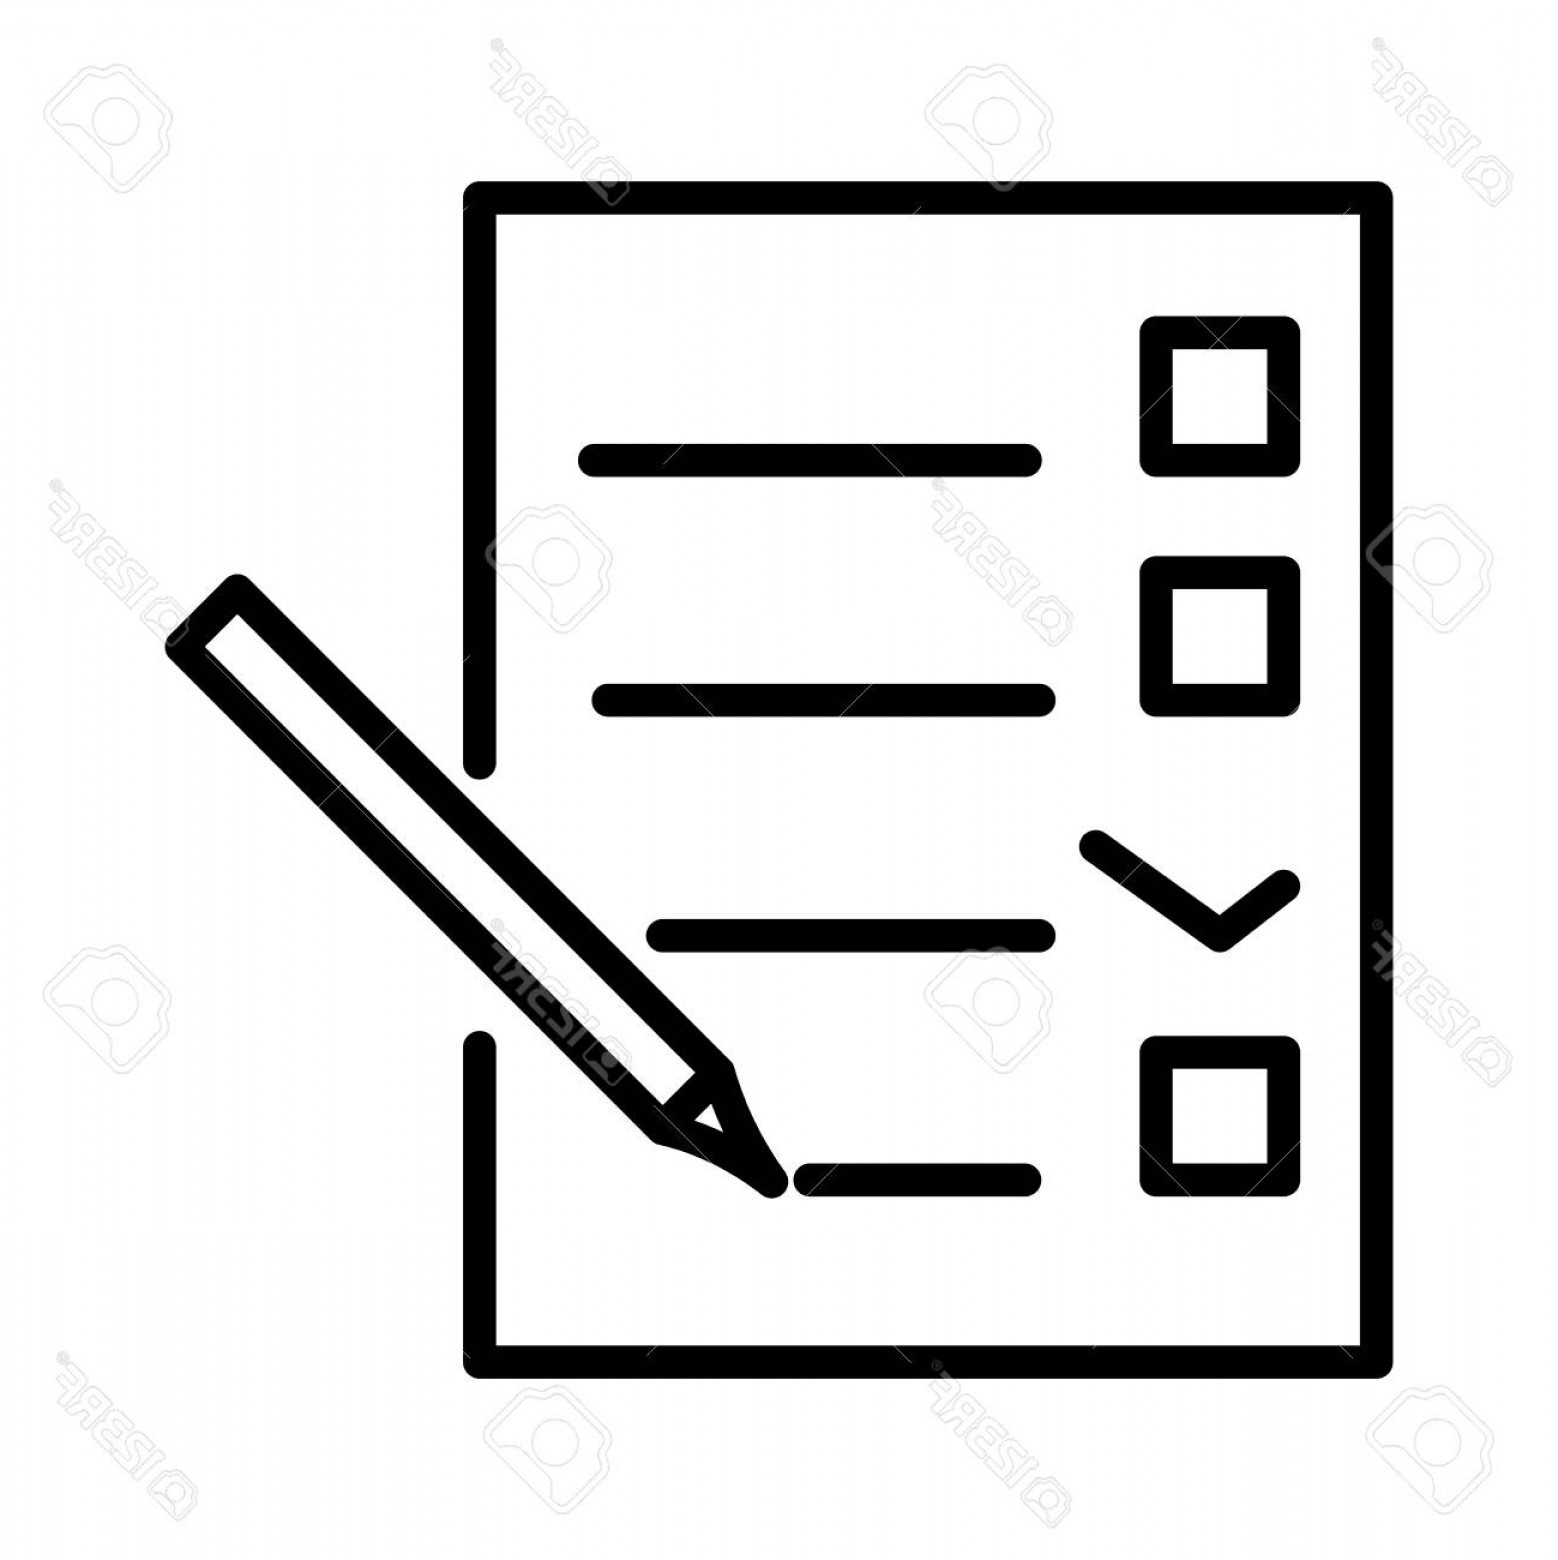 Paper And Pencil Icon Vector: Photostock Vector Checklist Document With Pencil Vector Notepad Paper Document Icon Flat Line Office Doc Icon Vector I